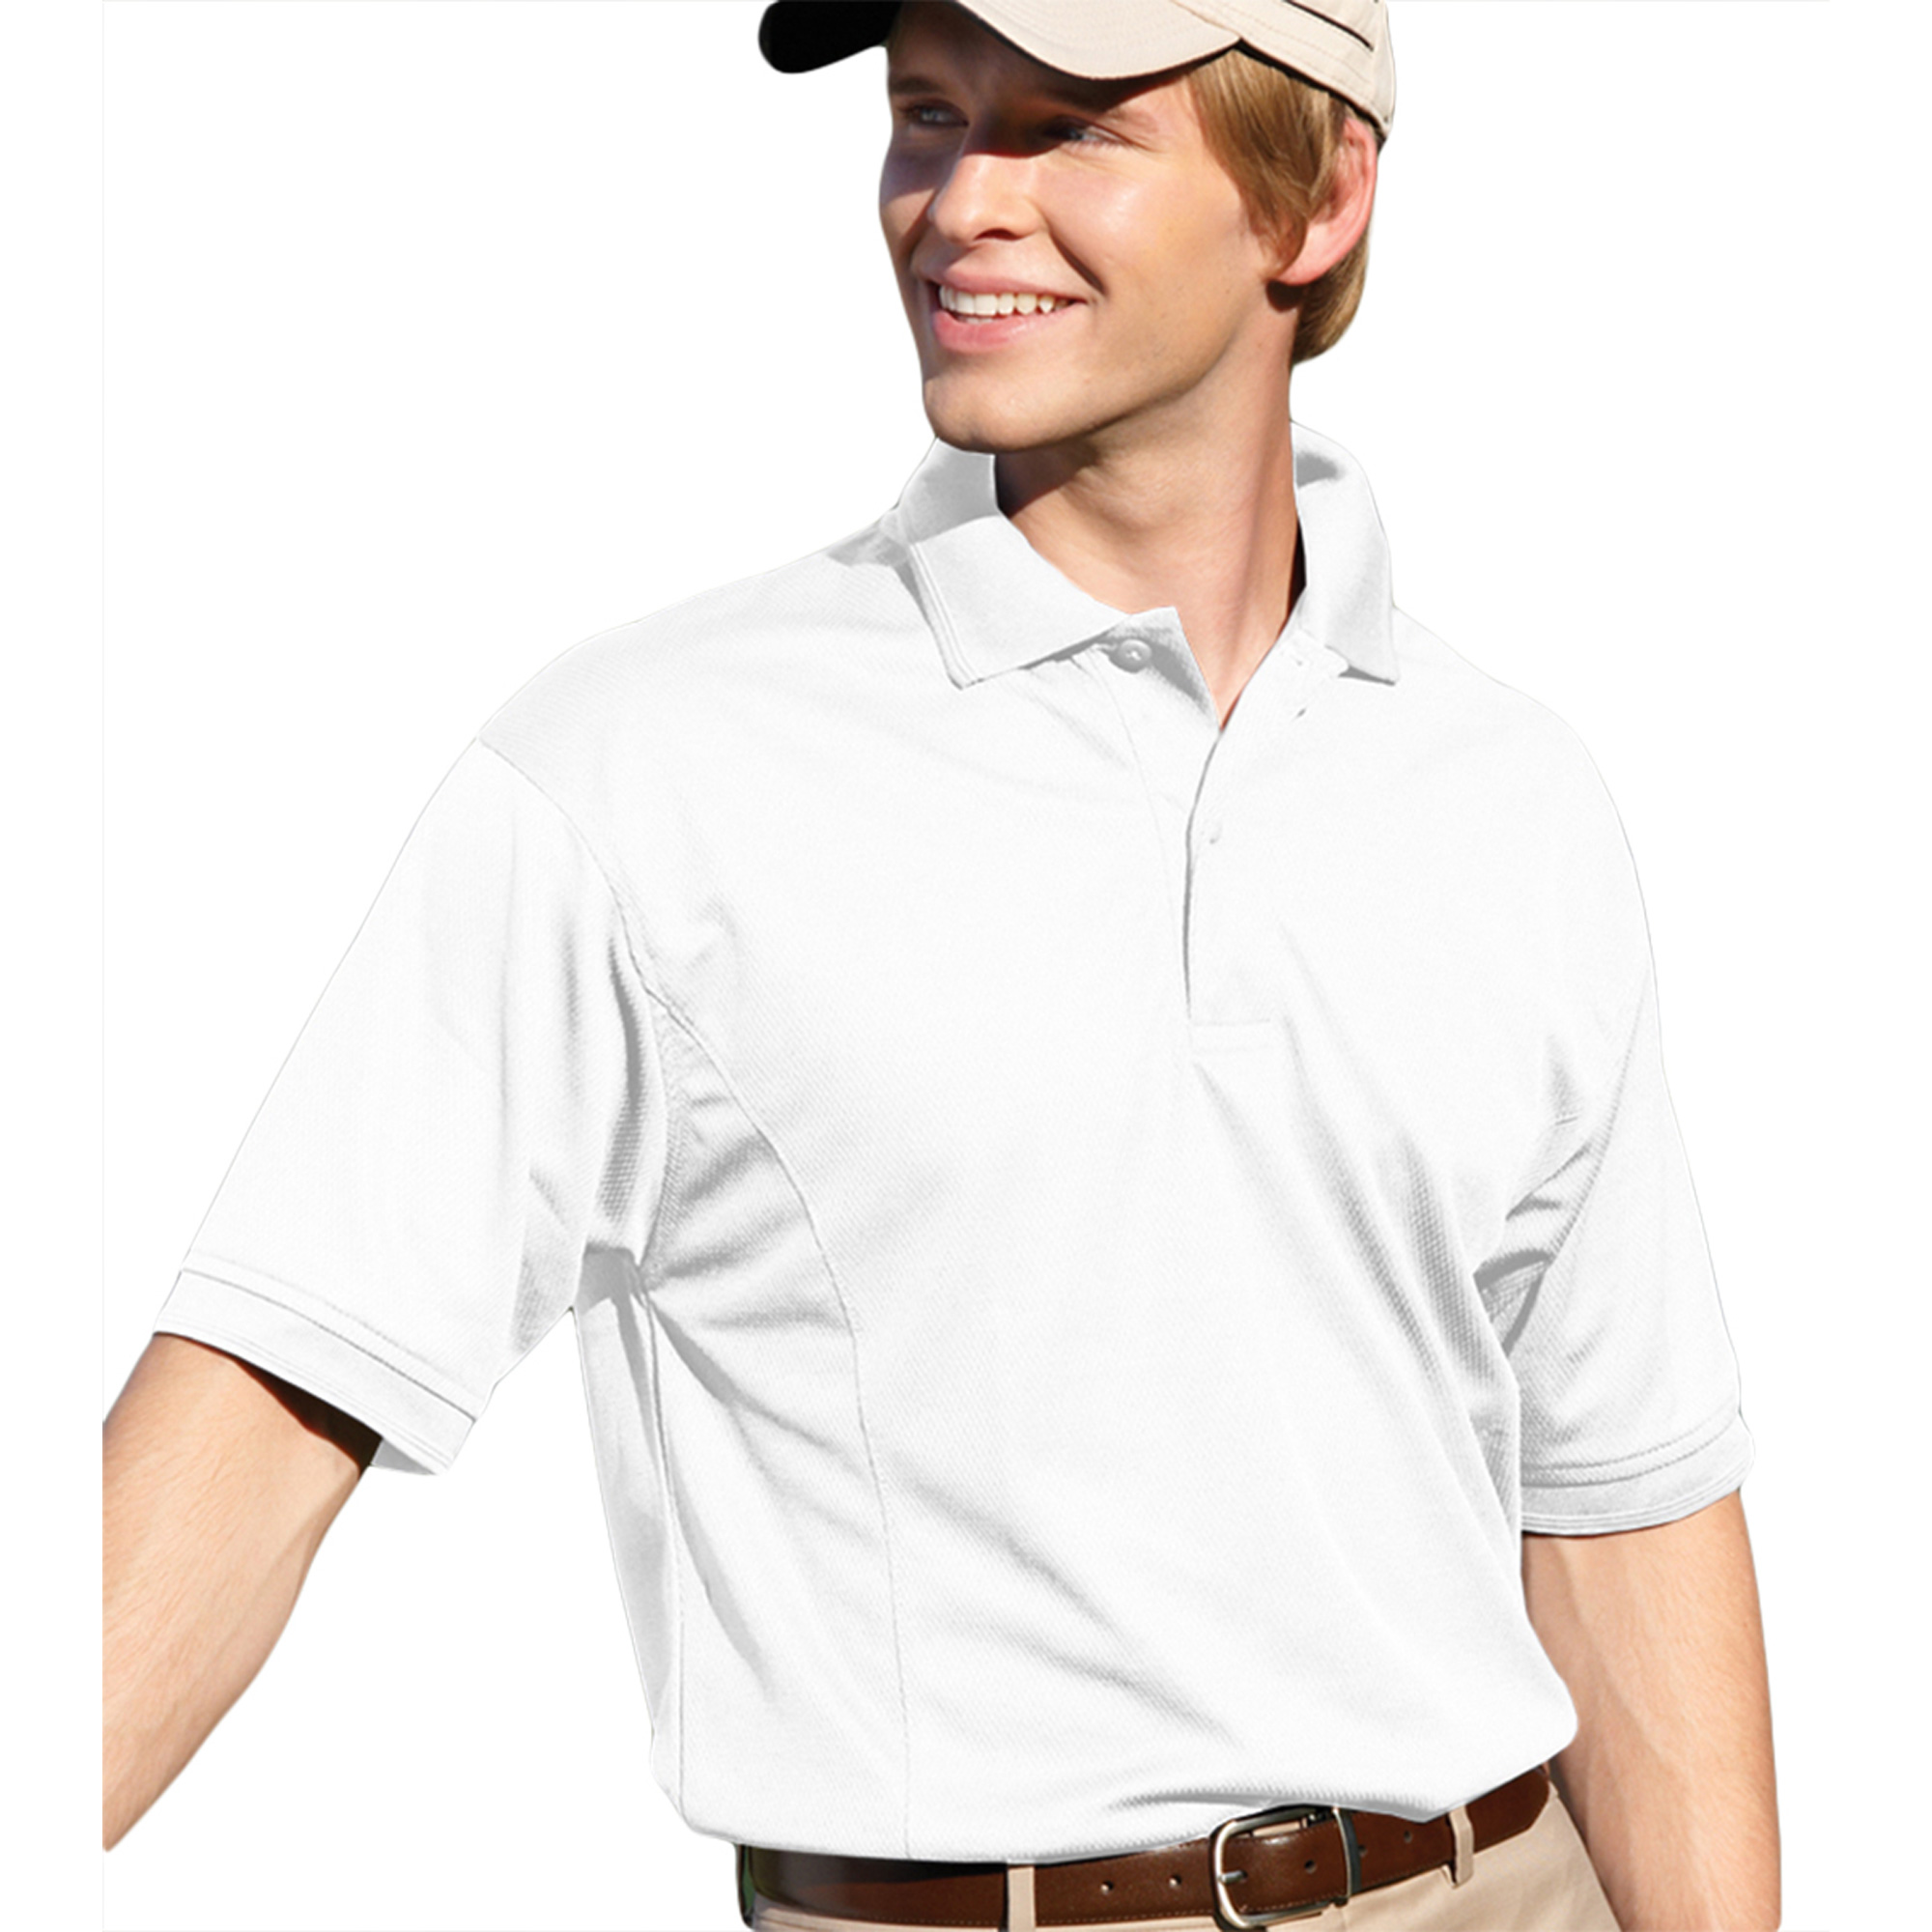 00820599181153 MENS PERFORMANCE GOLF SHIRT 2800 ROYAL 4XL